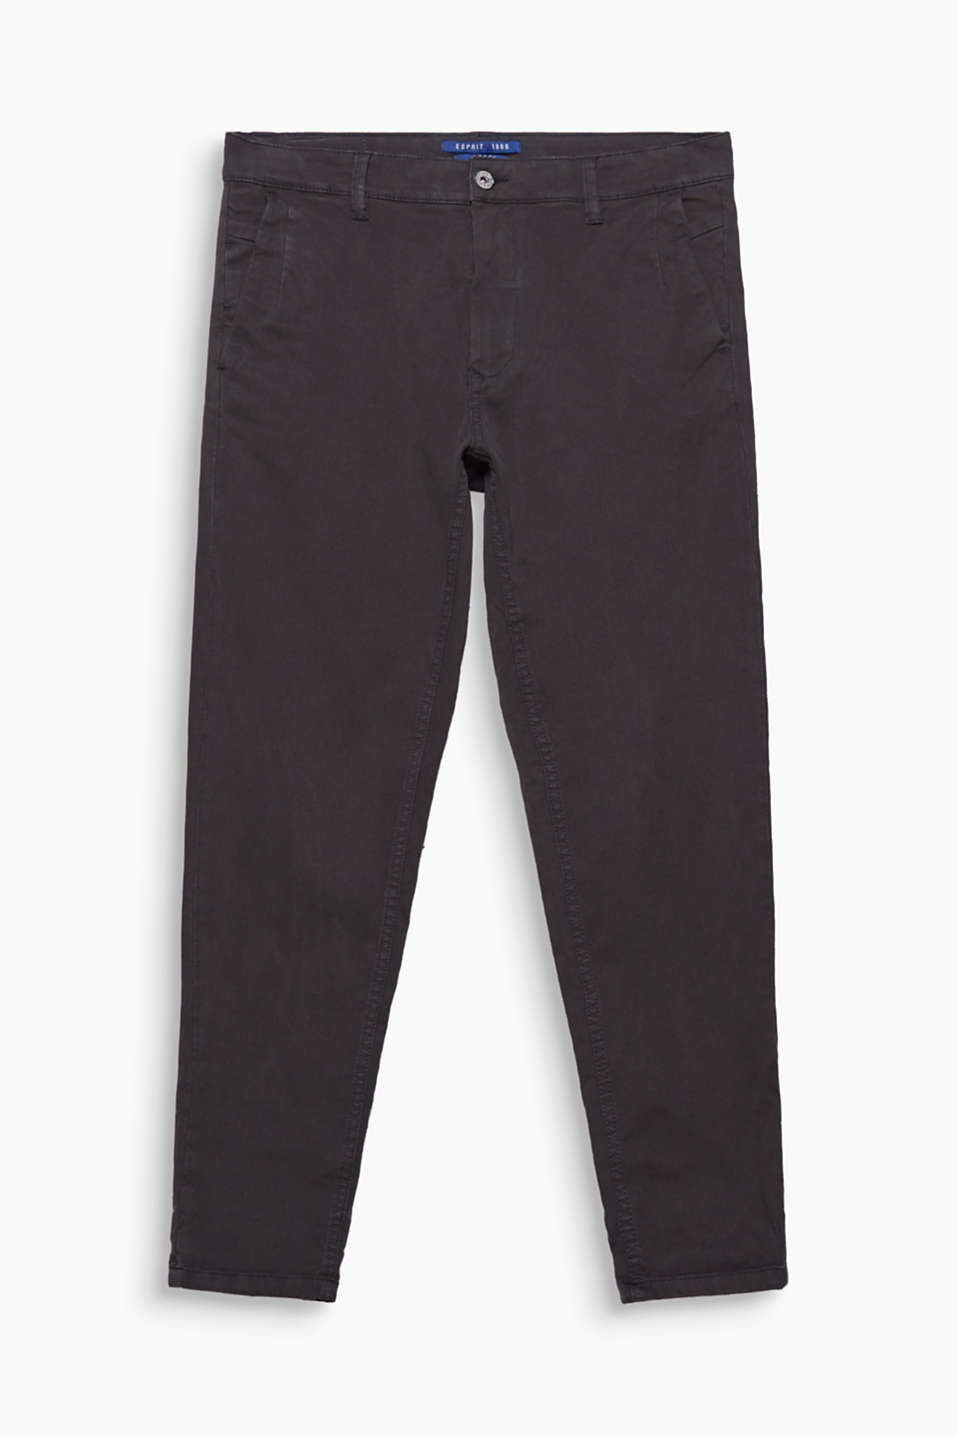 This casual, basic piece is a must for every wardrobe: twill trousers with added stretch for comfort.